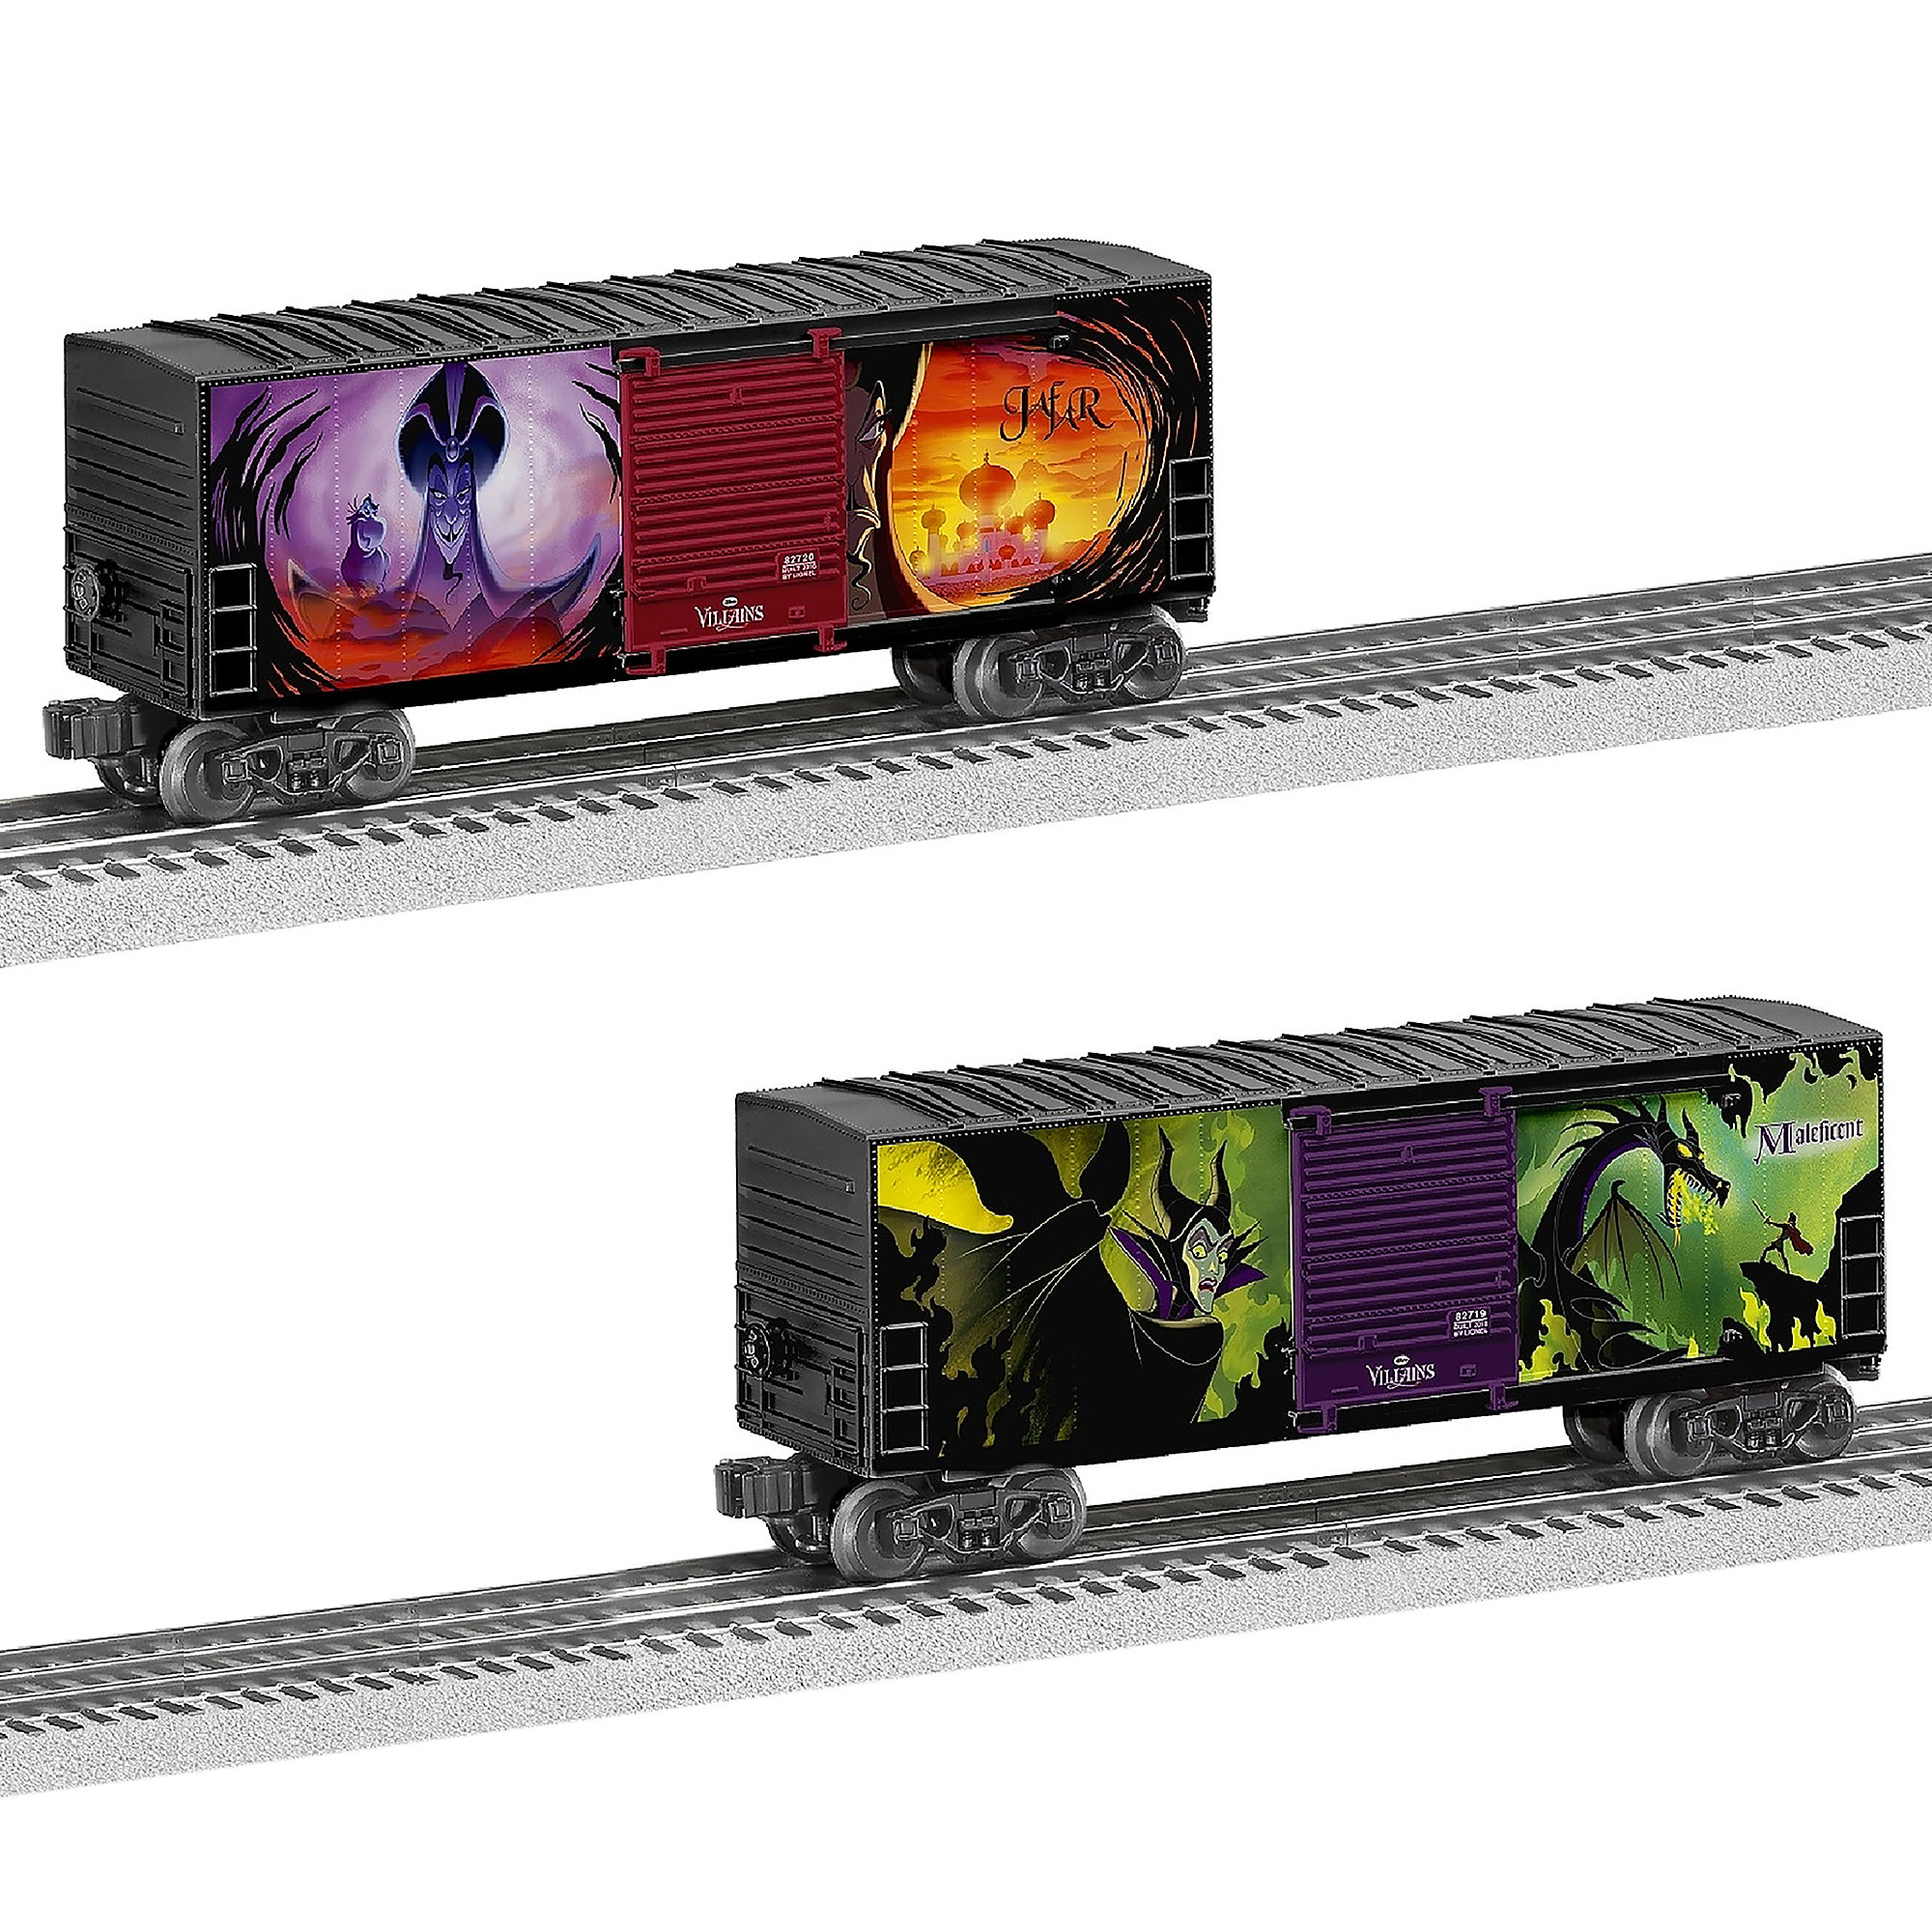 Disney Villains Hi-Cube Boxcar Set by Lionel